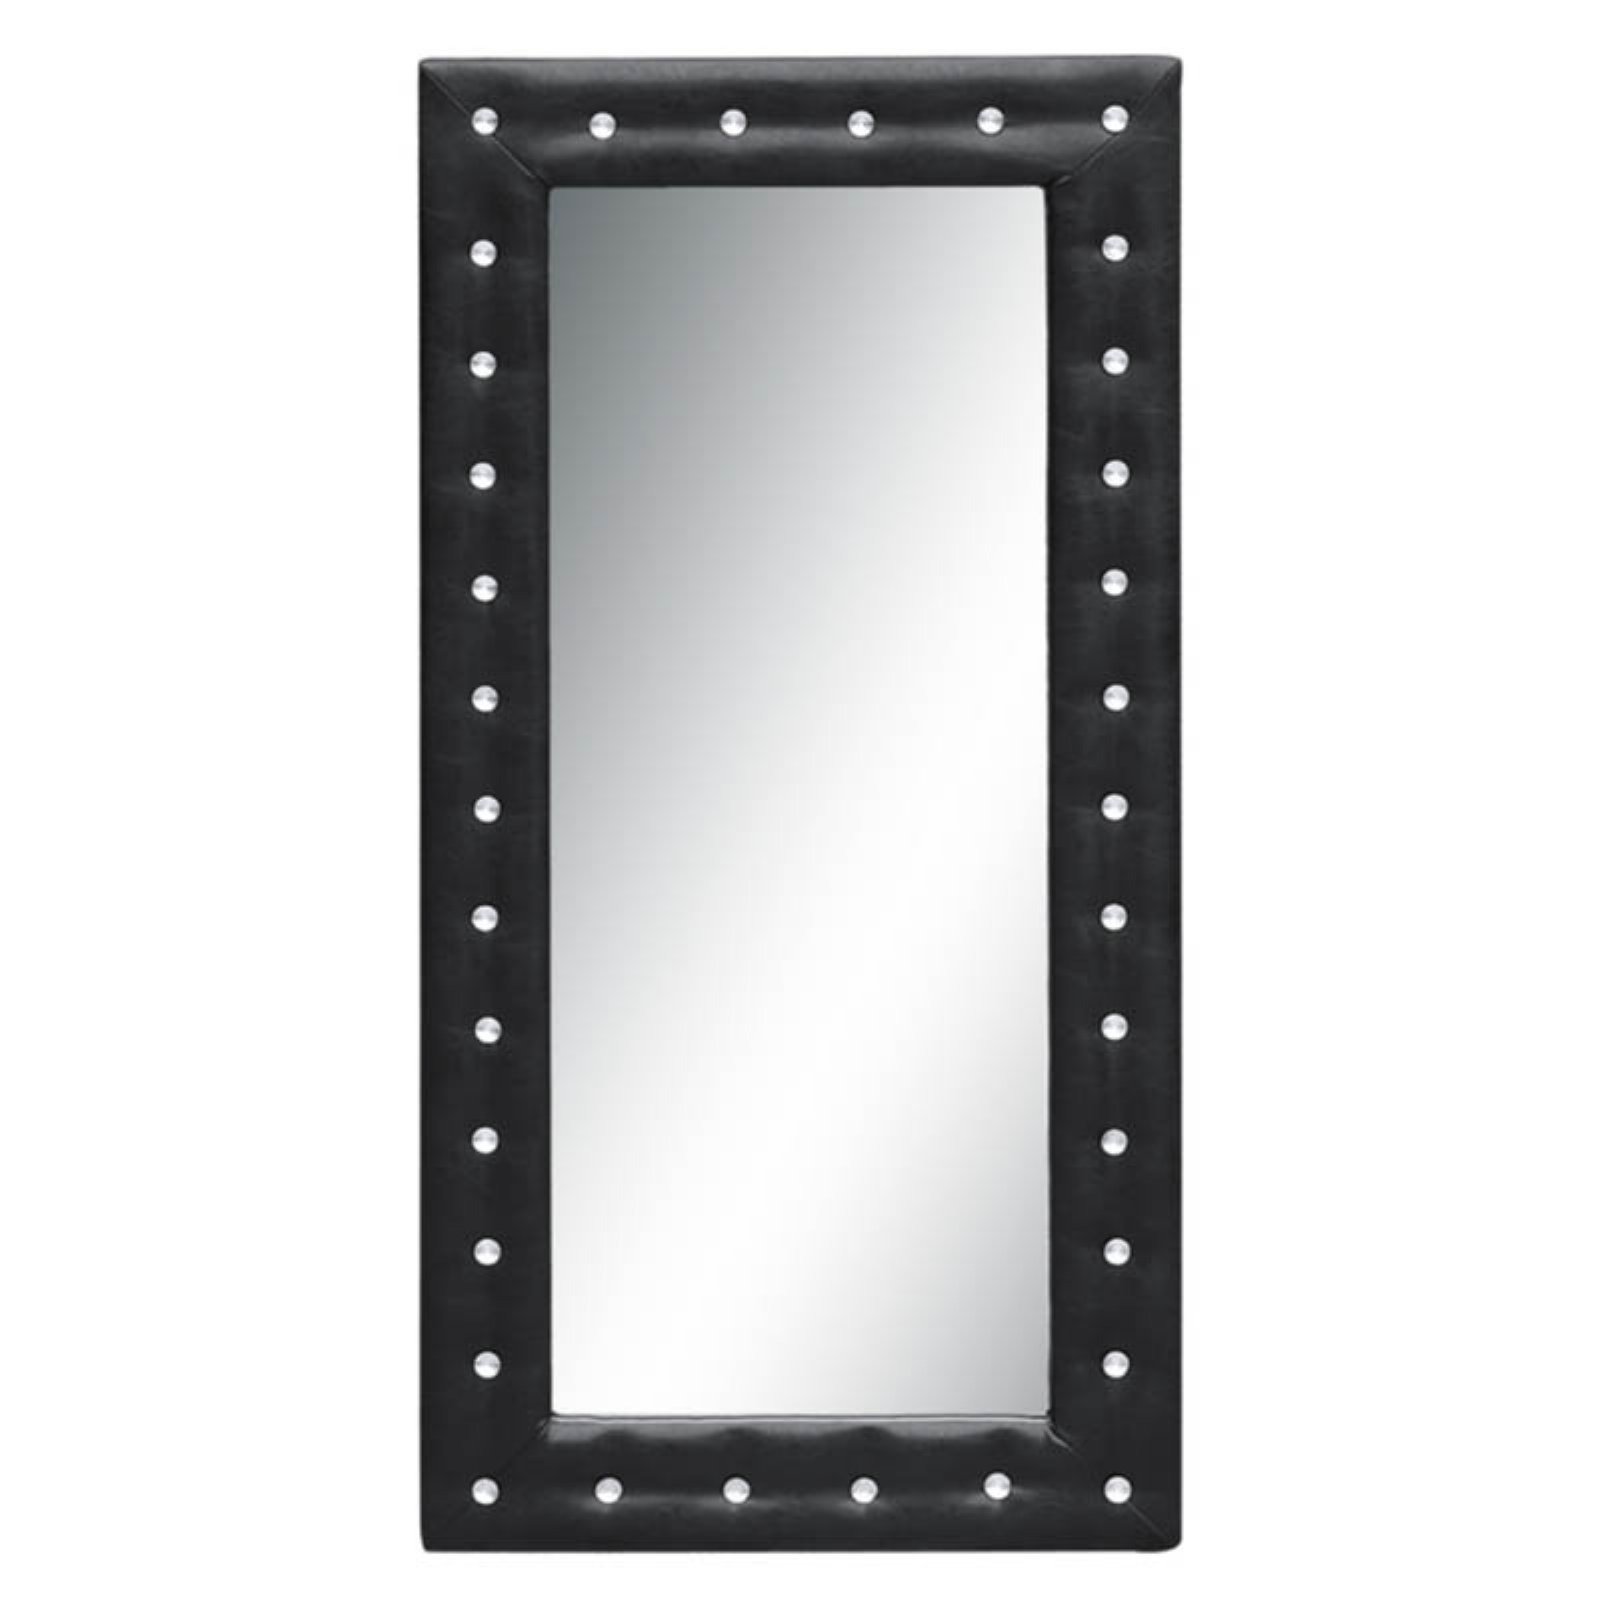 Fine Mod Imports 36 in. Tufted Floor Mirror by I&L Distributing